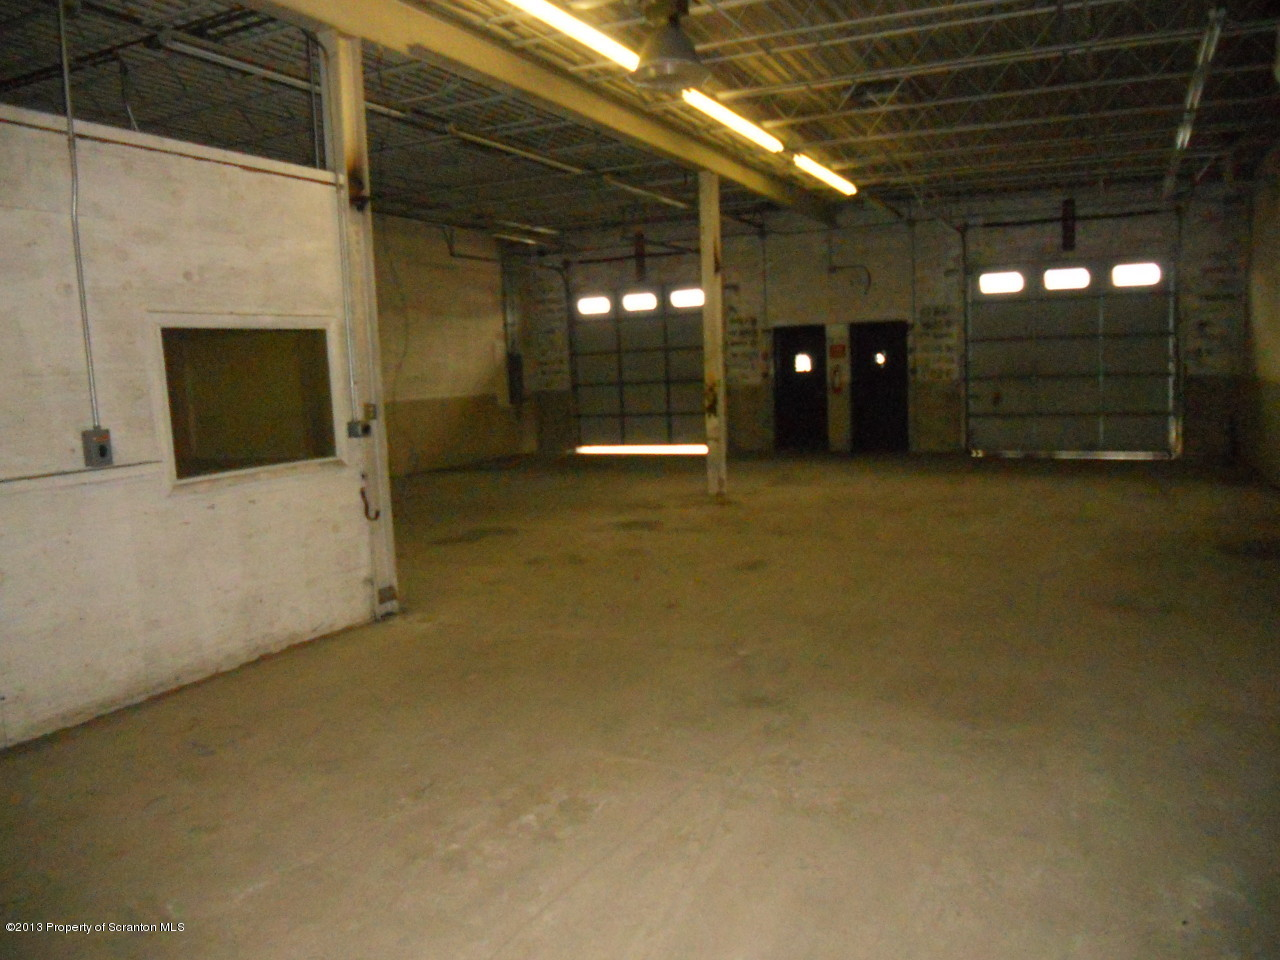 563 Cando Expressway, Hazleton, Pennsylvania 18201, ,1 BathroomBathrooms,Commercial,For Lease,Cando Expressway,13-602